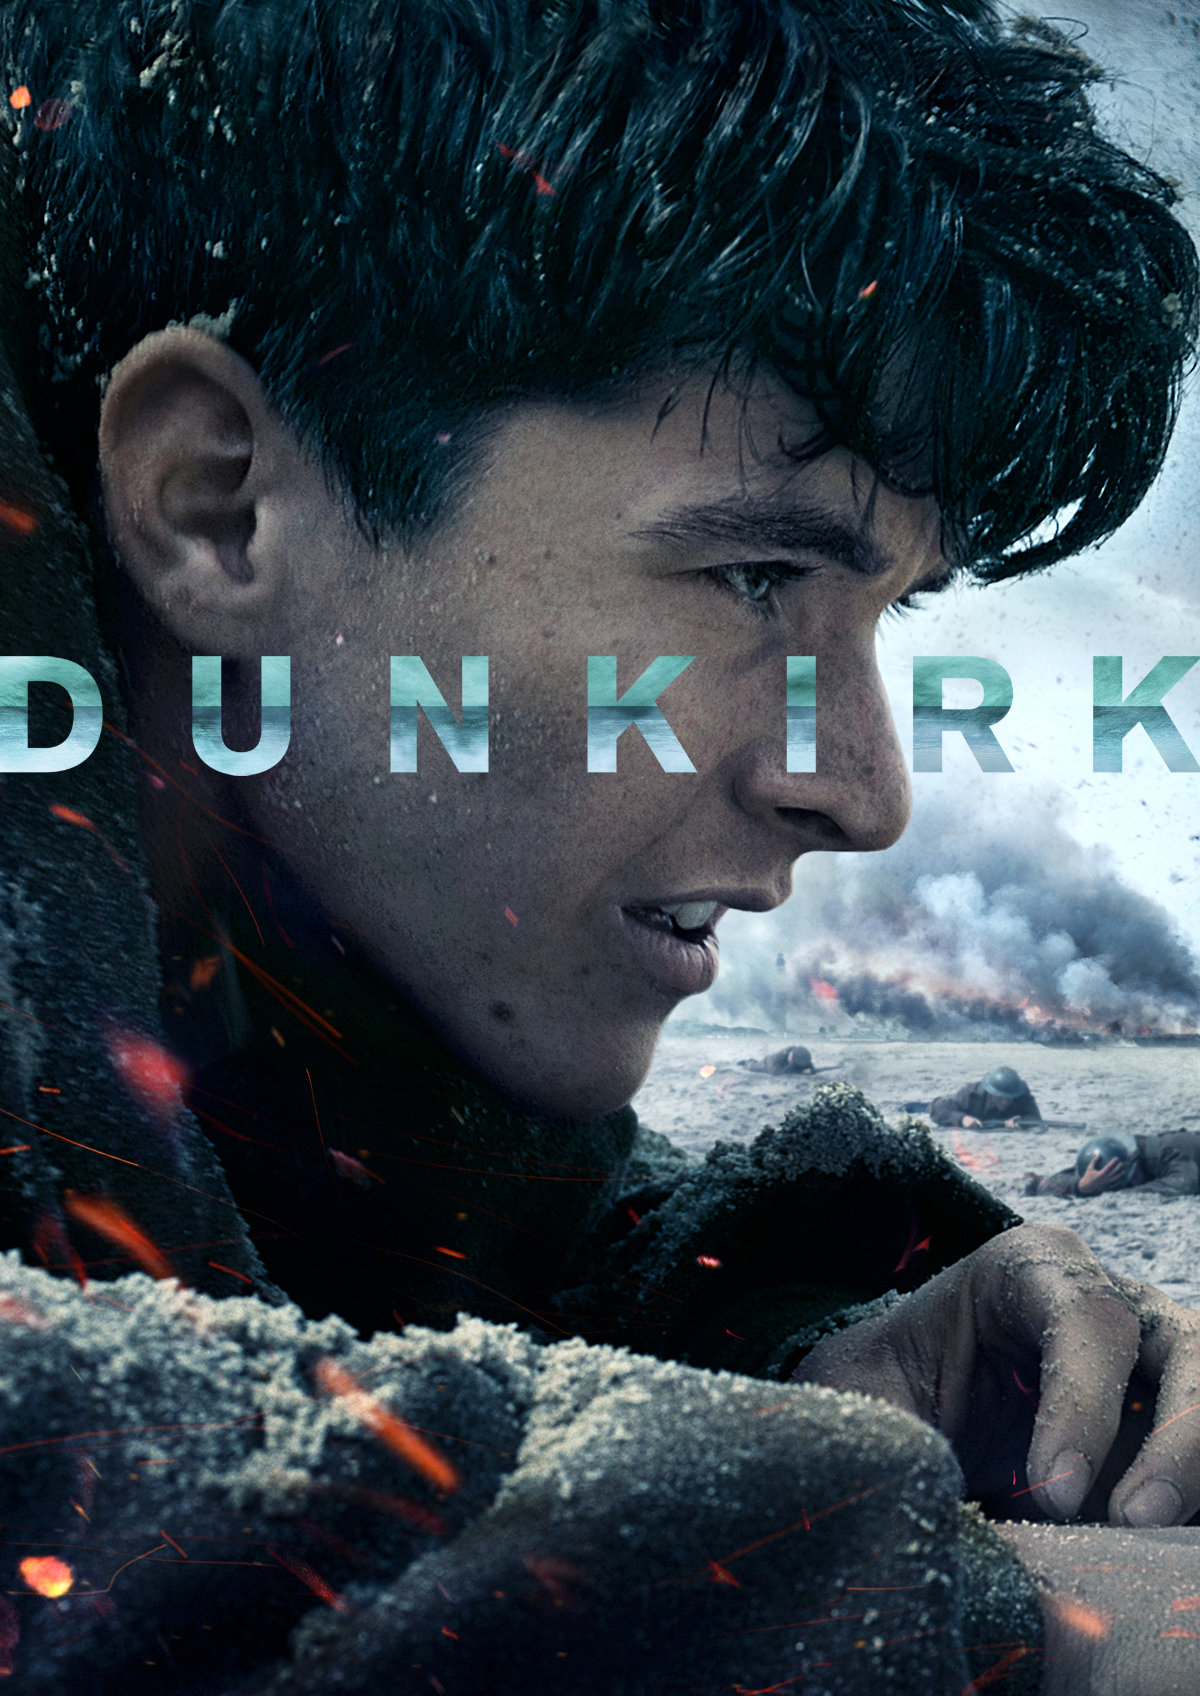 'Dunkirk' movie poster